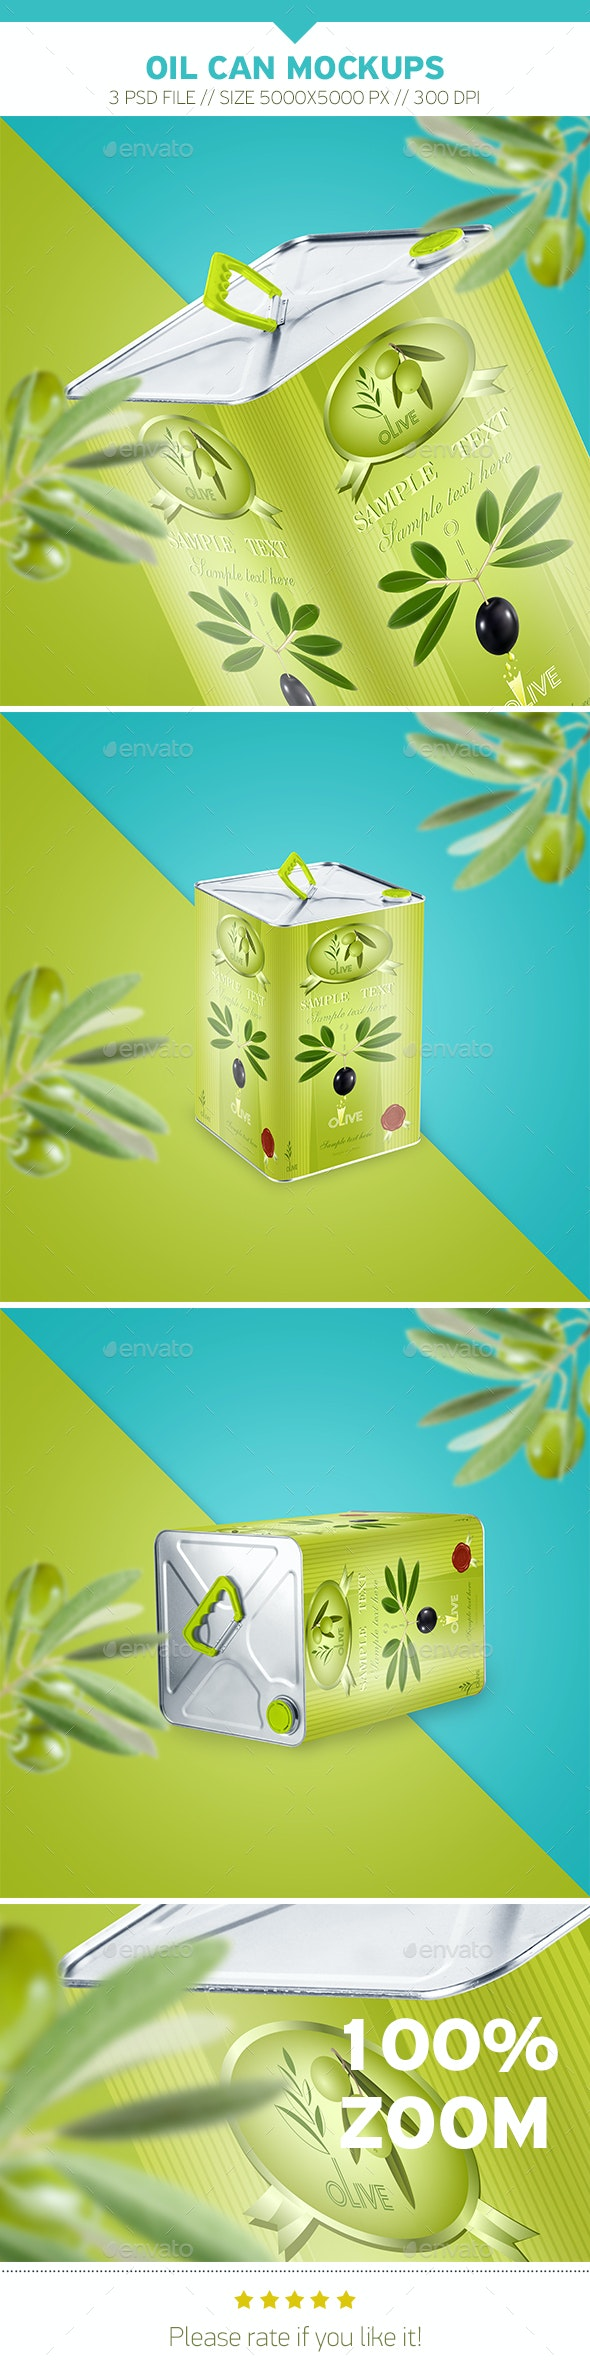 Oil Can Mockups - Product Mock-Ups Graphics